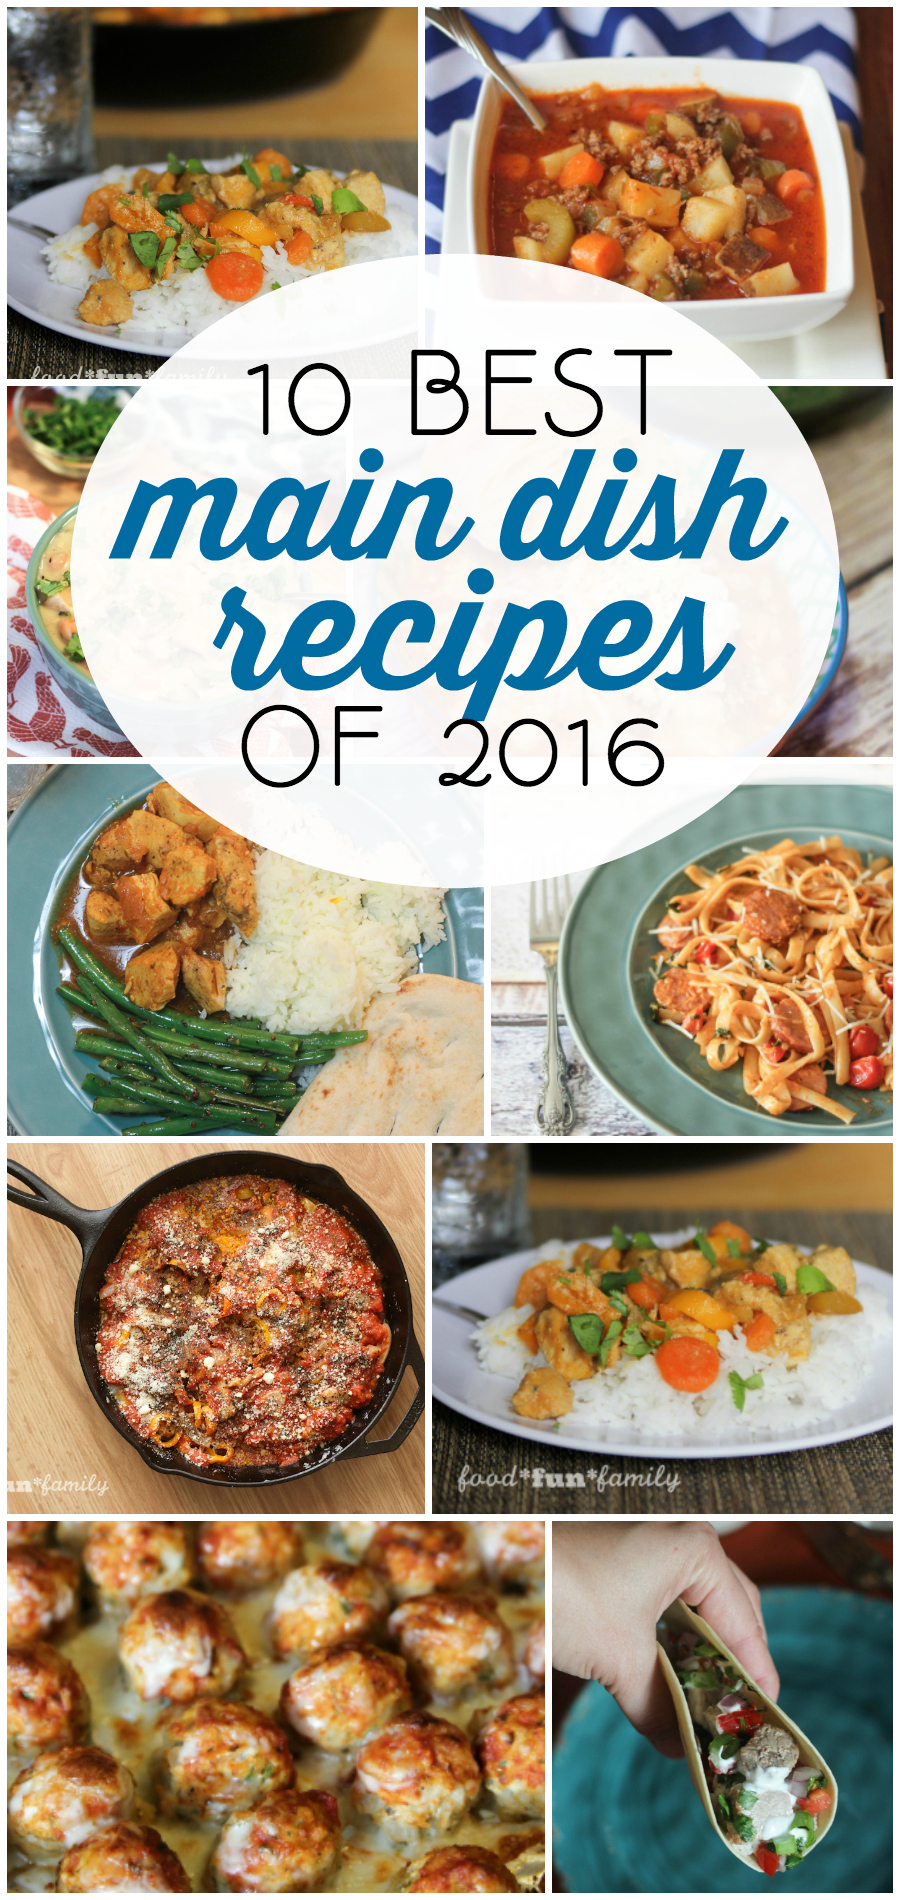 10 Best Main Dish recipes of 2016 from Food Fun Family